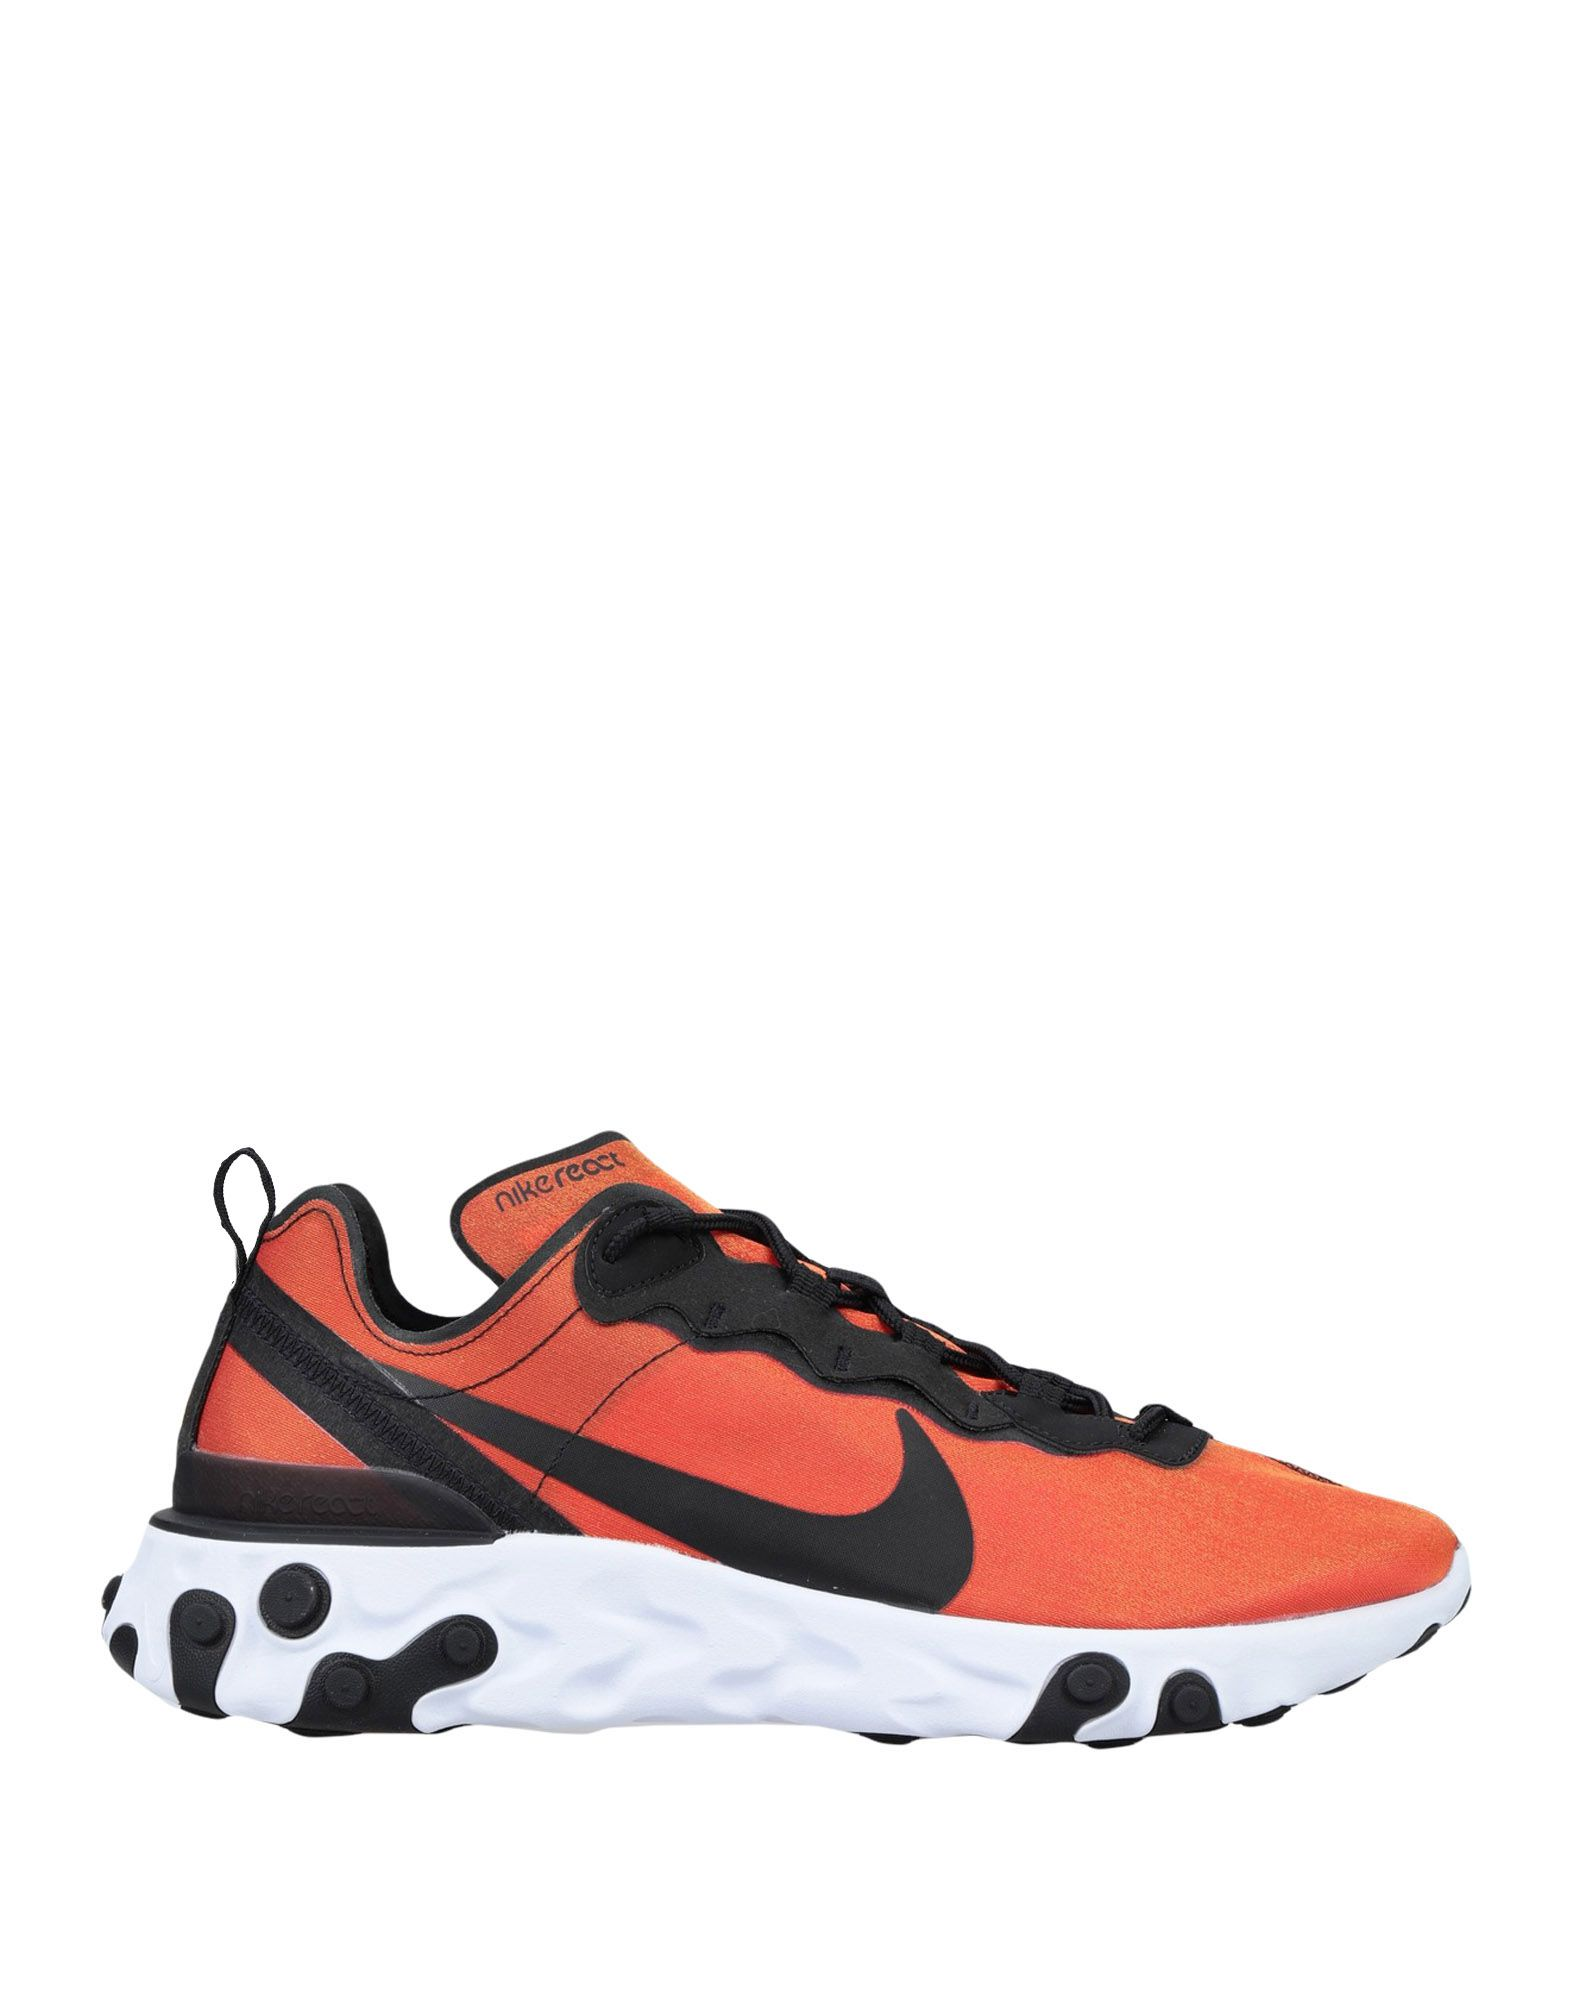 Turnschuhe Nike React Element 55 Premium - herren - 11704333IJ